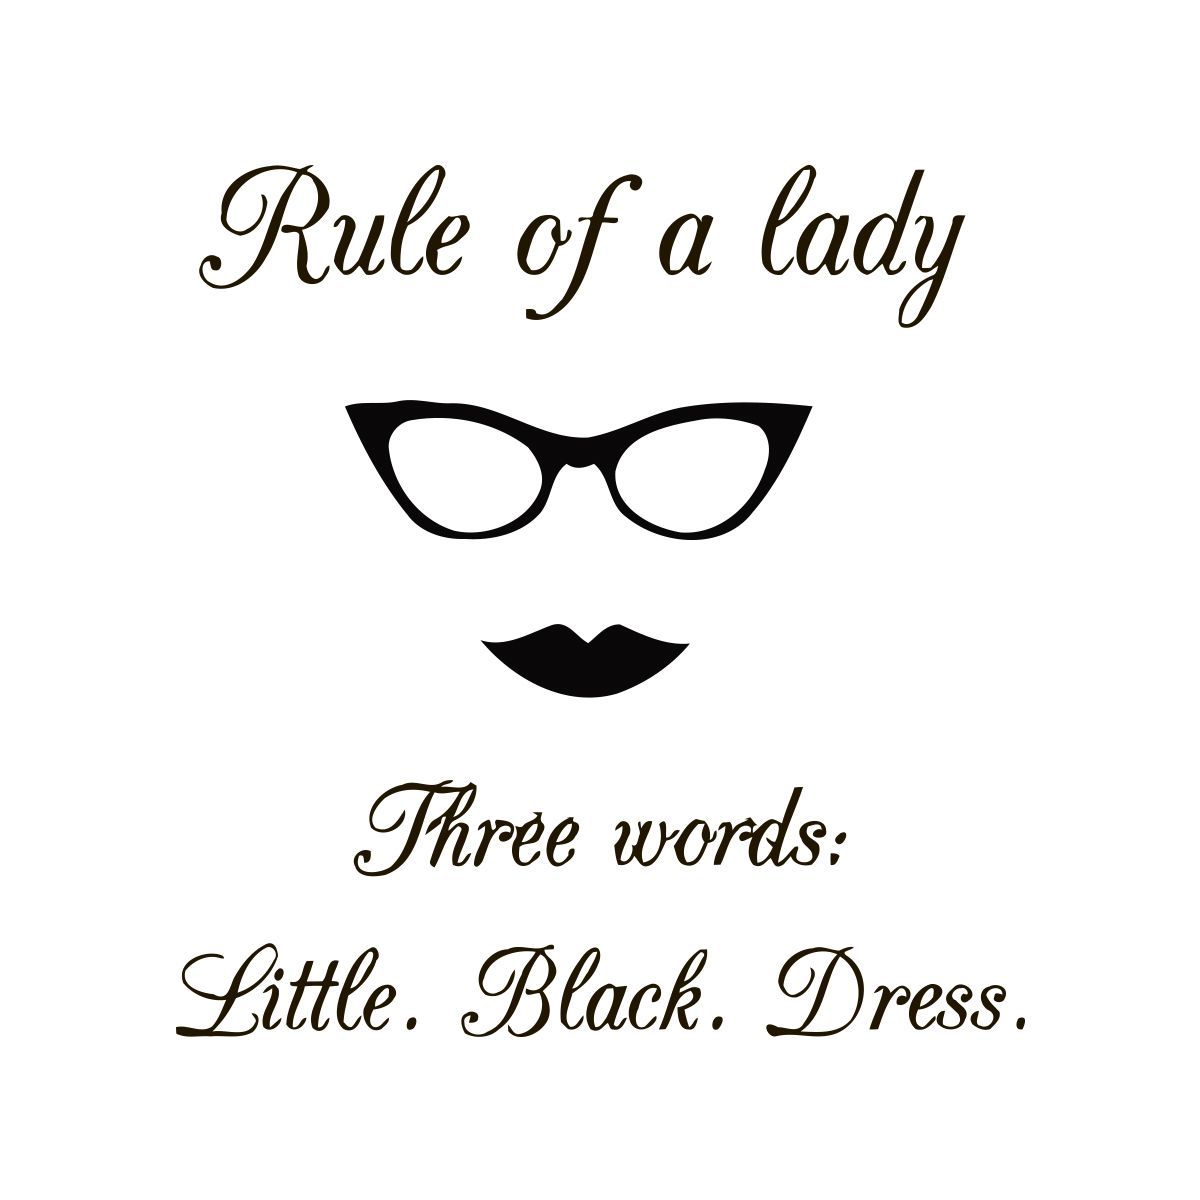 Little Black Dress Quote Fun Fashiony Stuff Dress Quotes